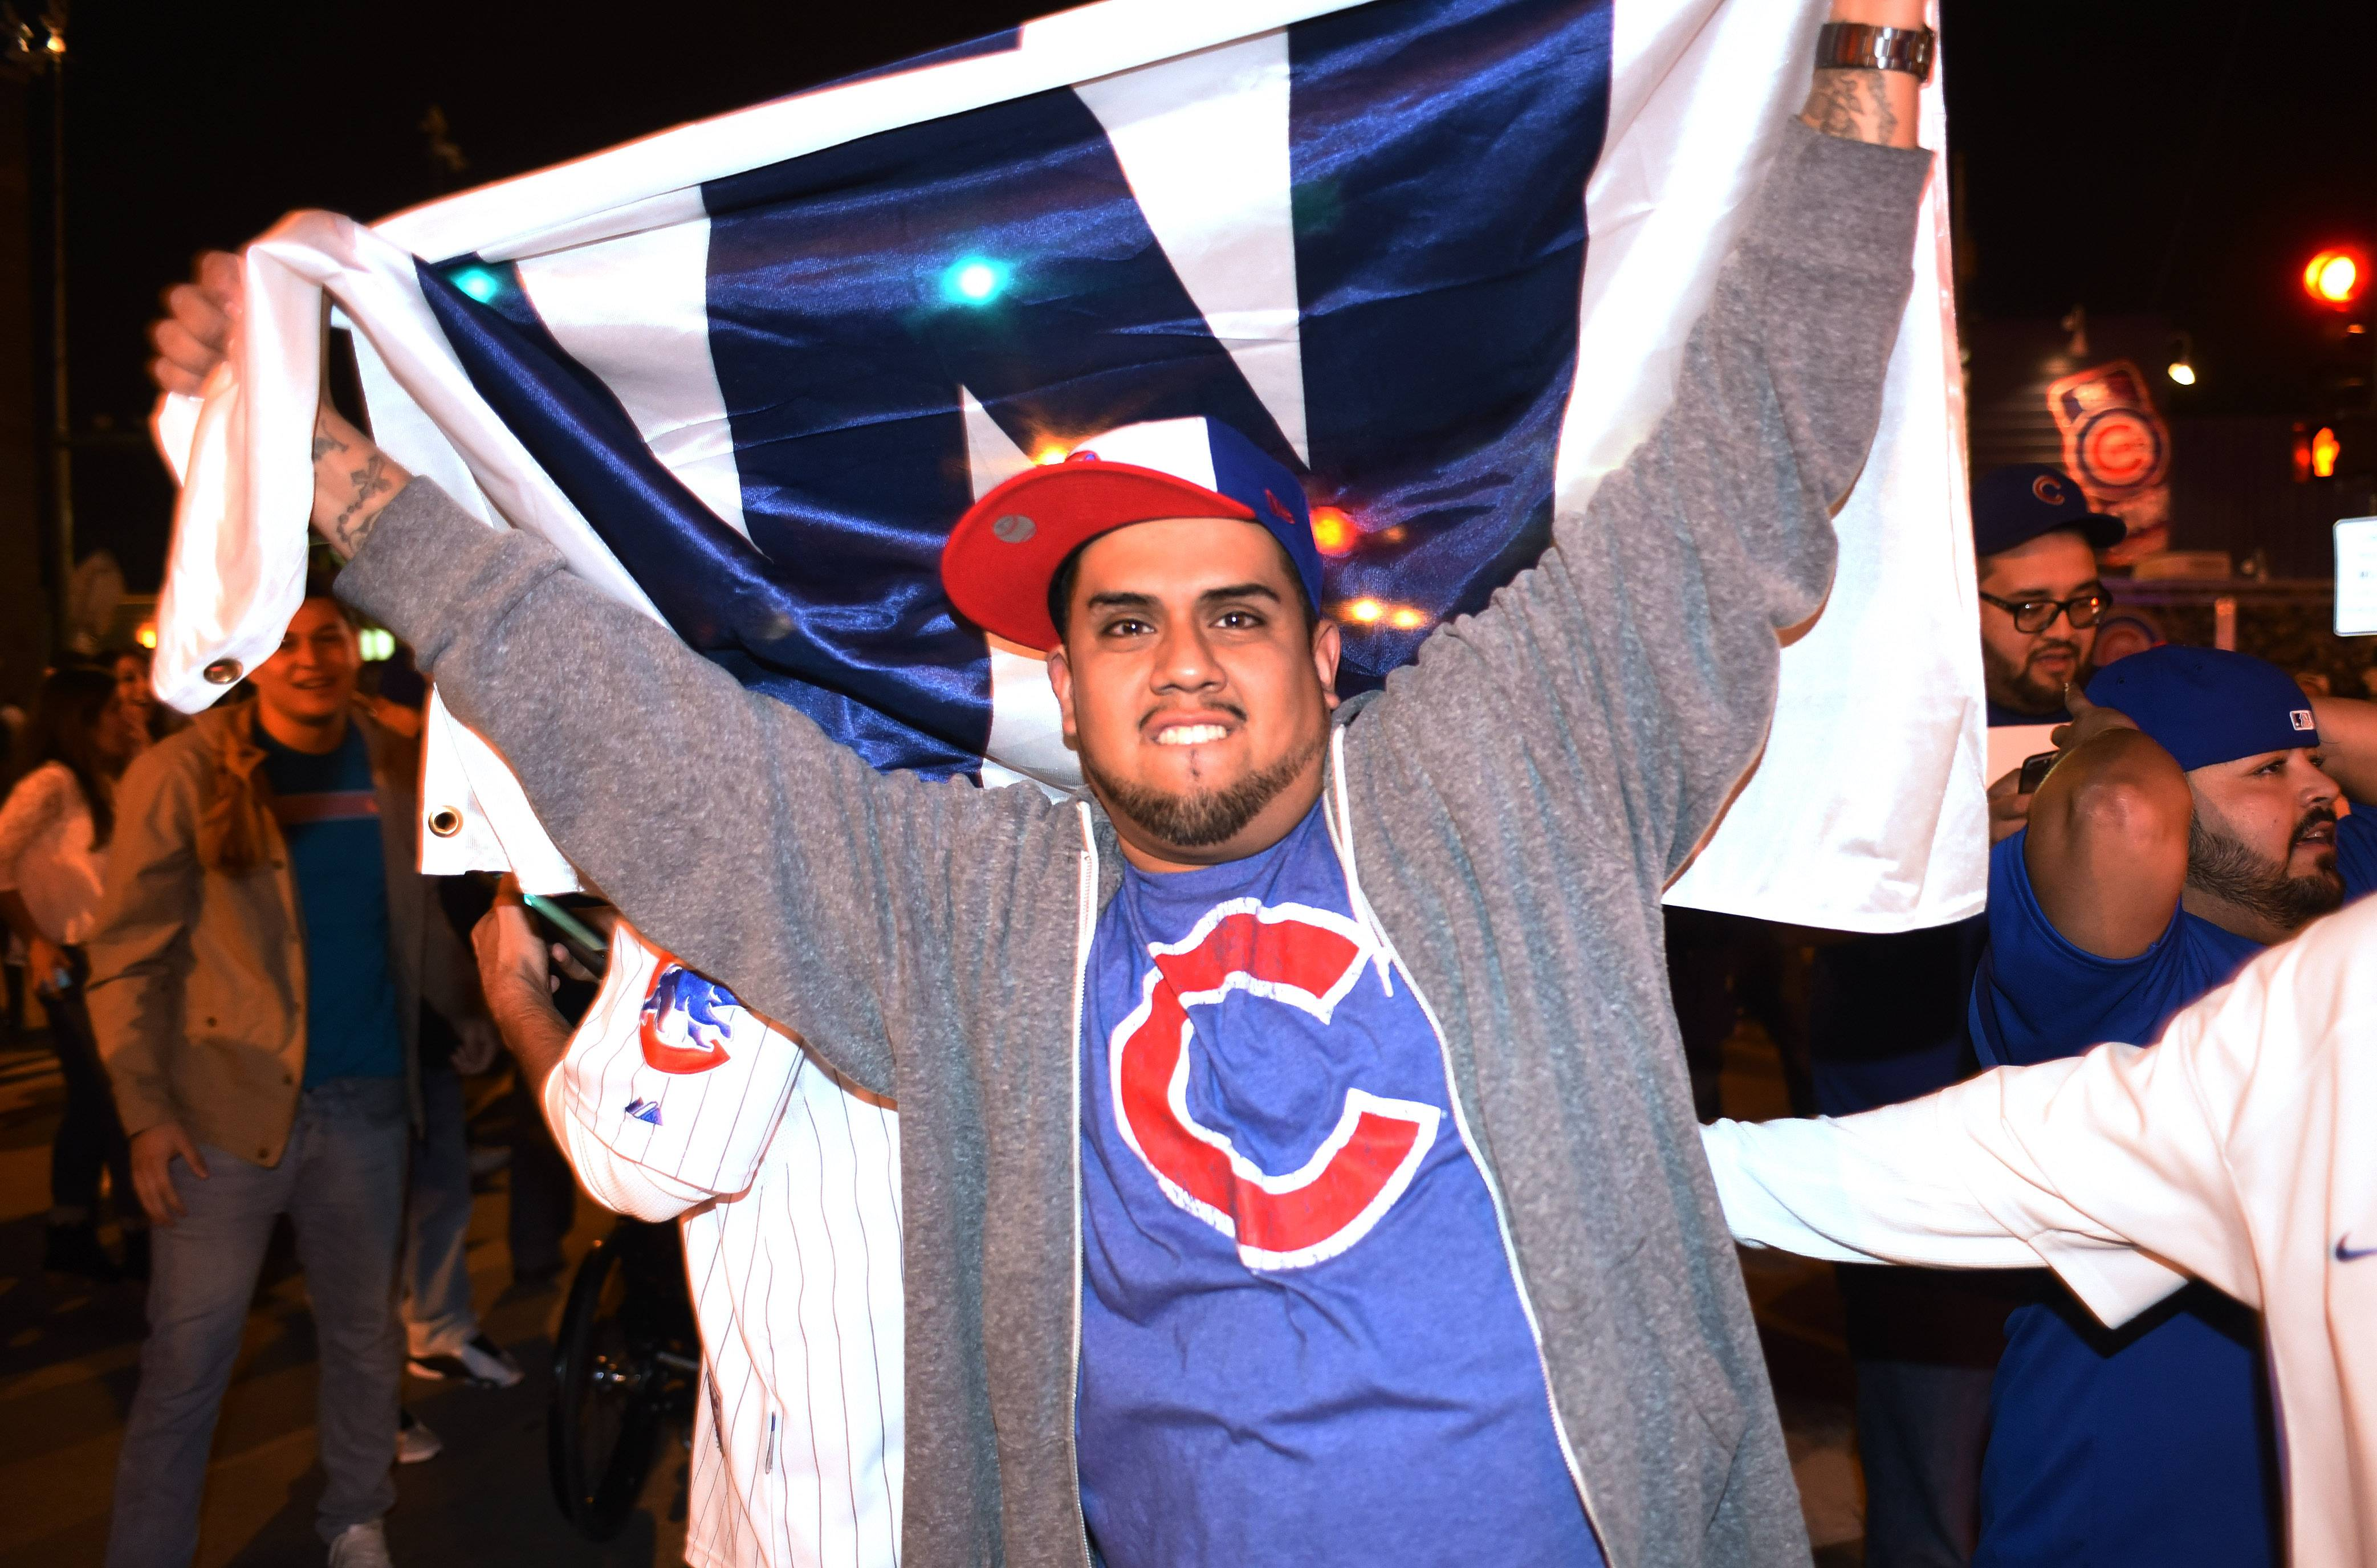 Fans watched the Cubs beat the Pittsburgh Pirates Wednesday at Murphy's Bleachers. The bars near Wrigley Field expect huge crowds for the playoffs.